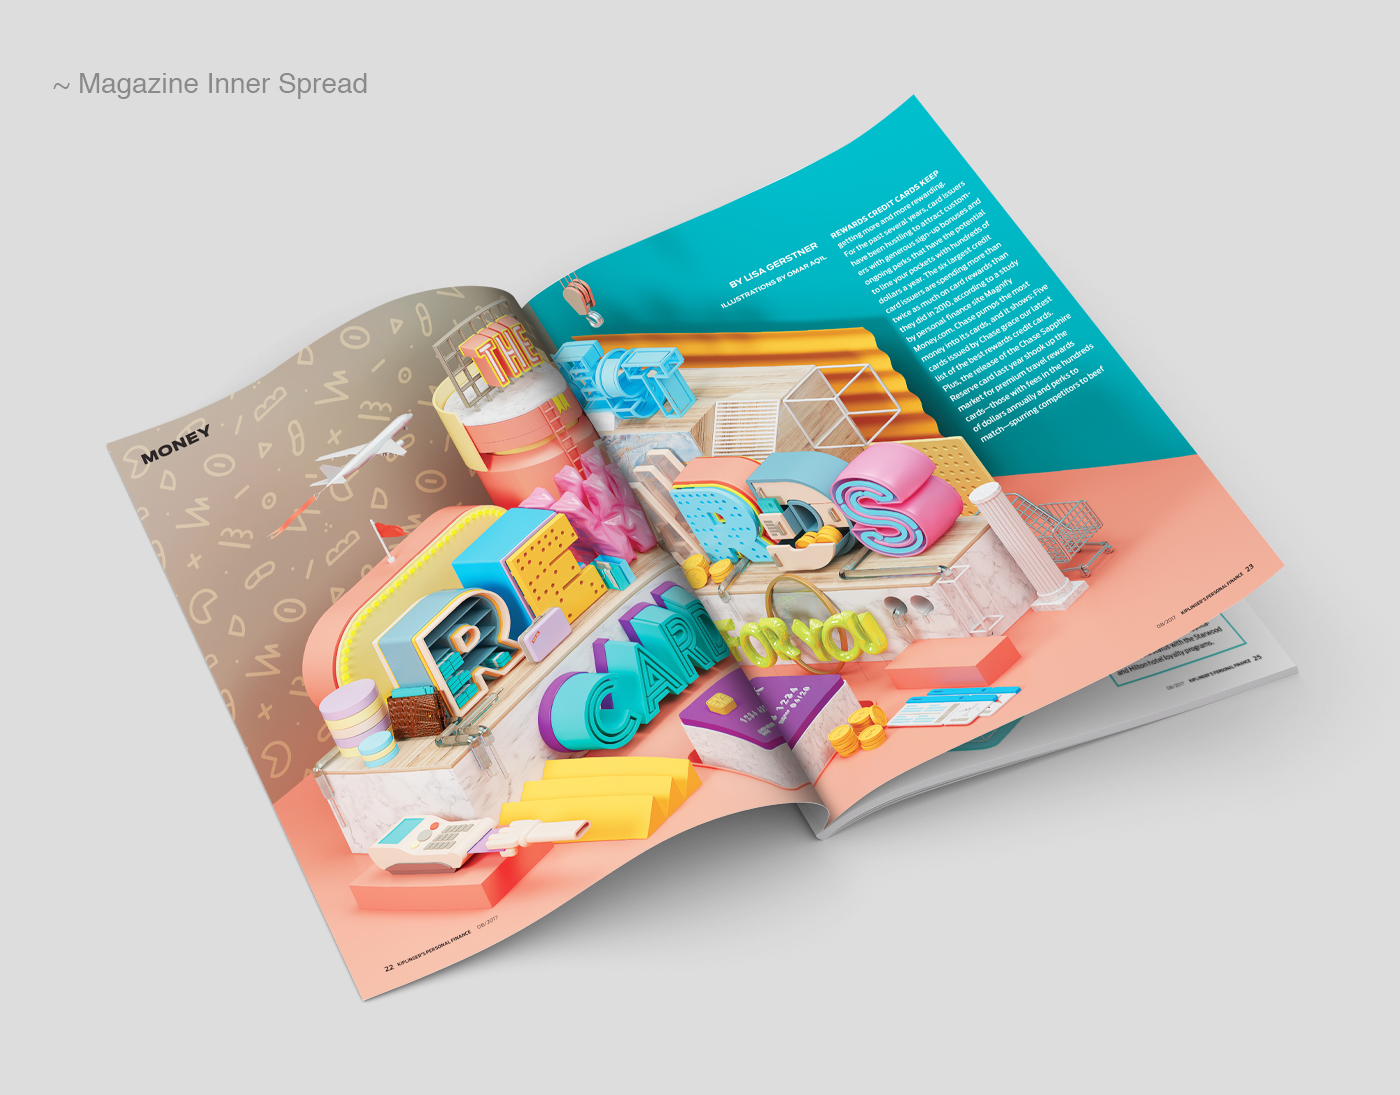 Illustration & CGI: Kiplinger Magazine Spread